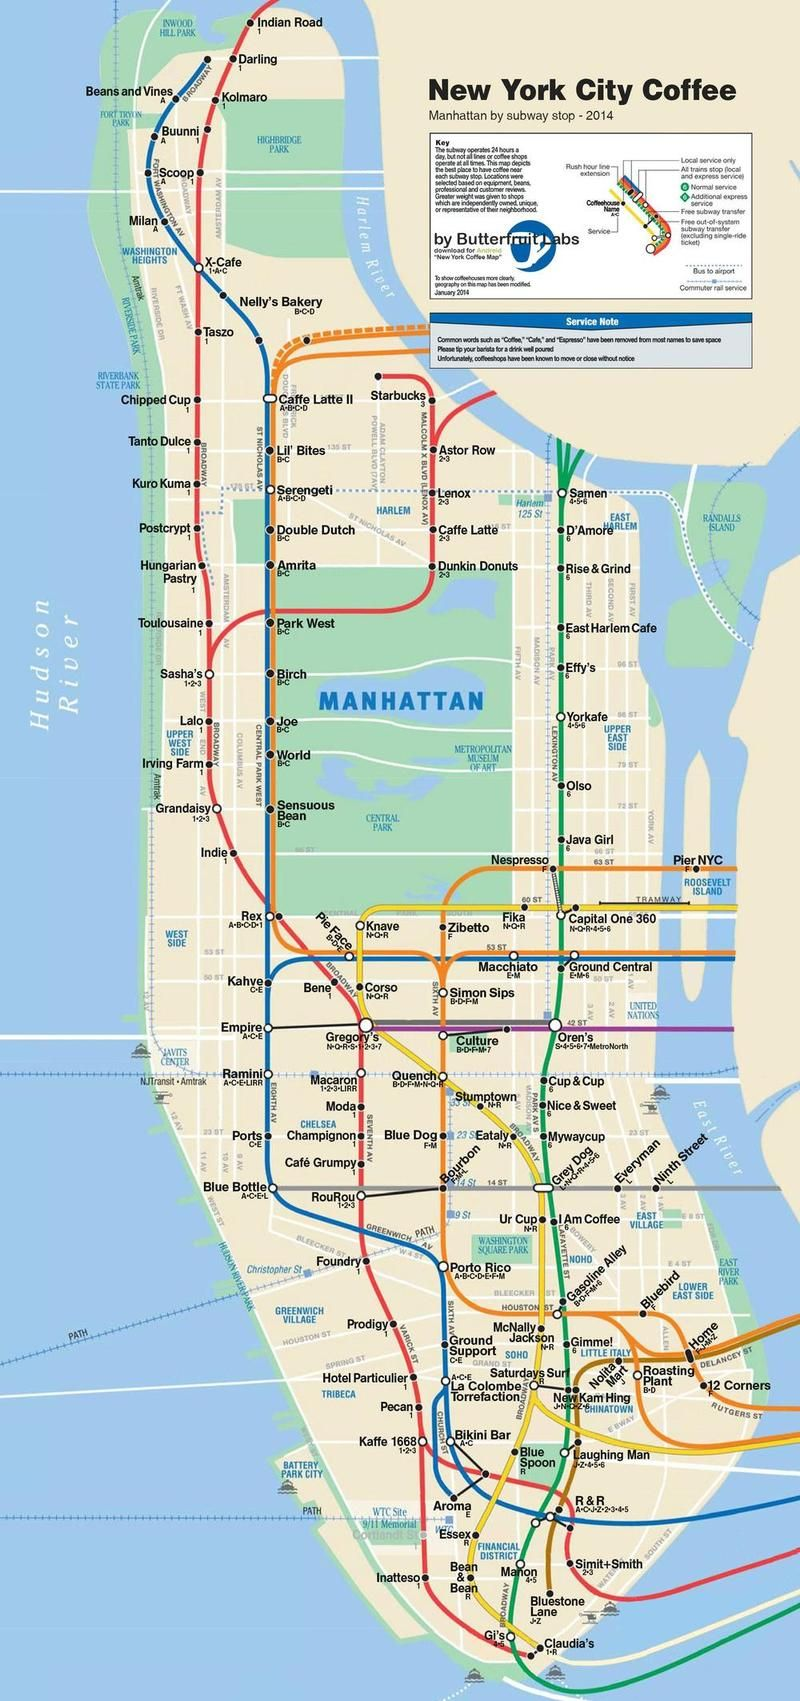 Nyc Subway Map Full.A Subway Map Of All The Best Coffee Shops In Nyc Coffee Shops In